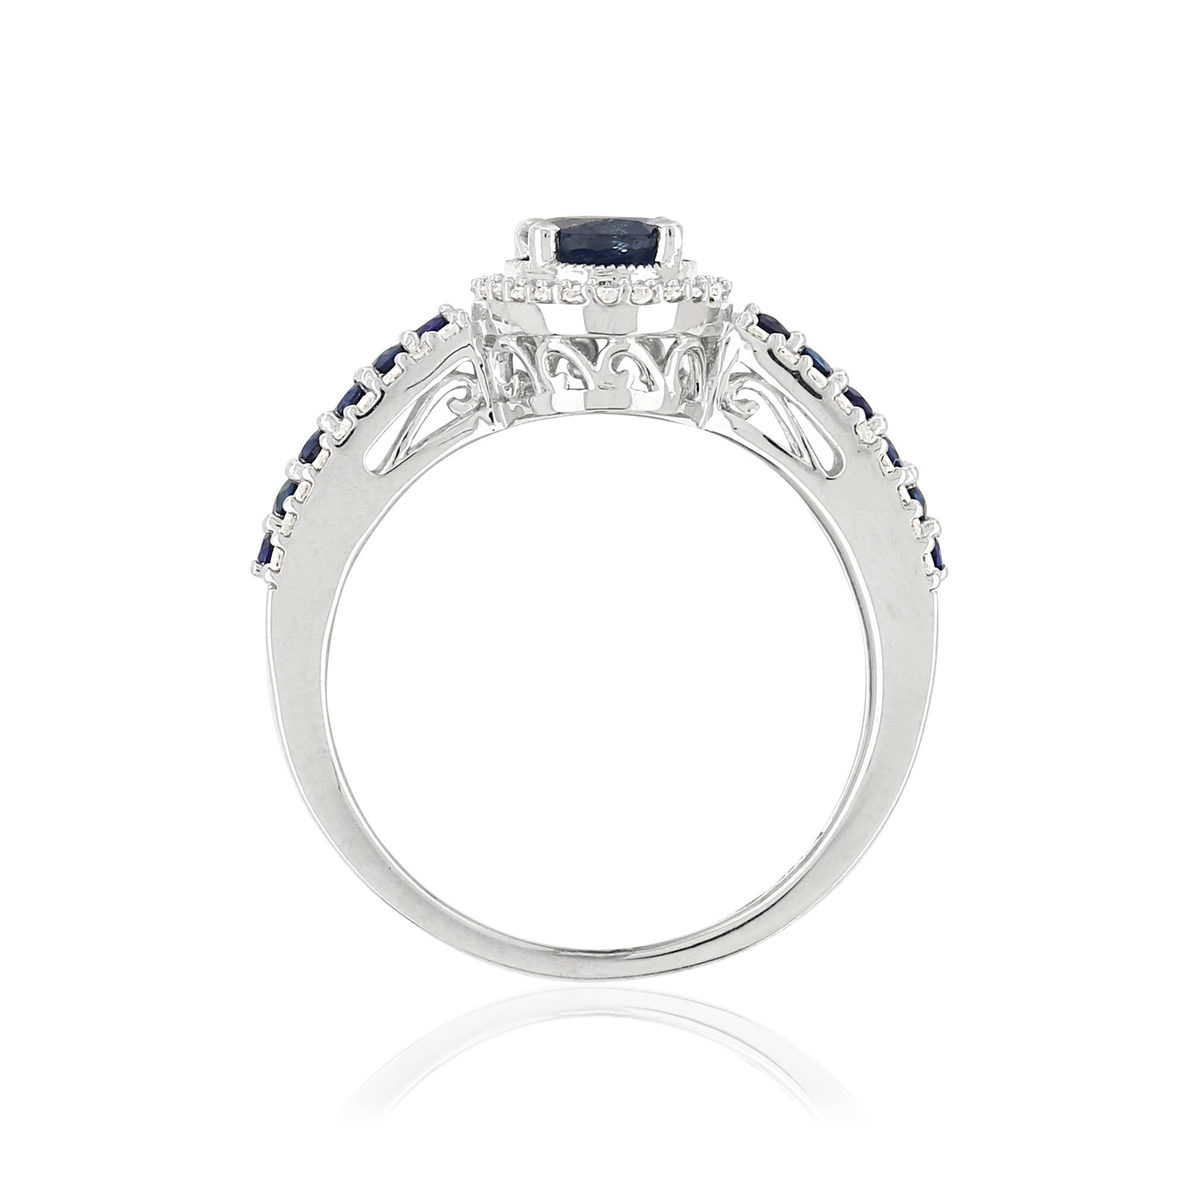 Bague MATY Or 750 blanc Saphirs et Diamants - vue 2